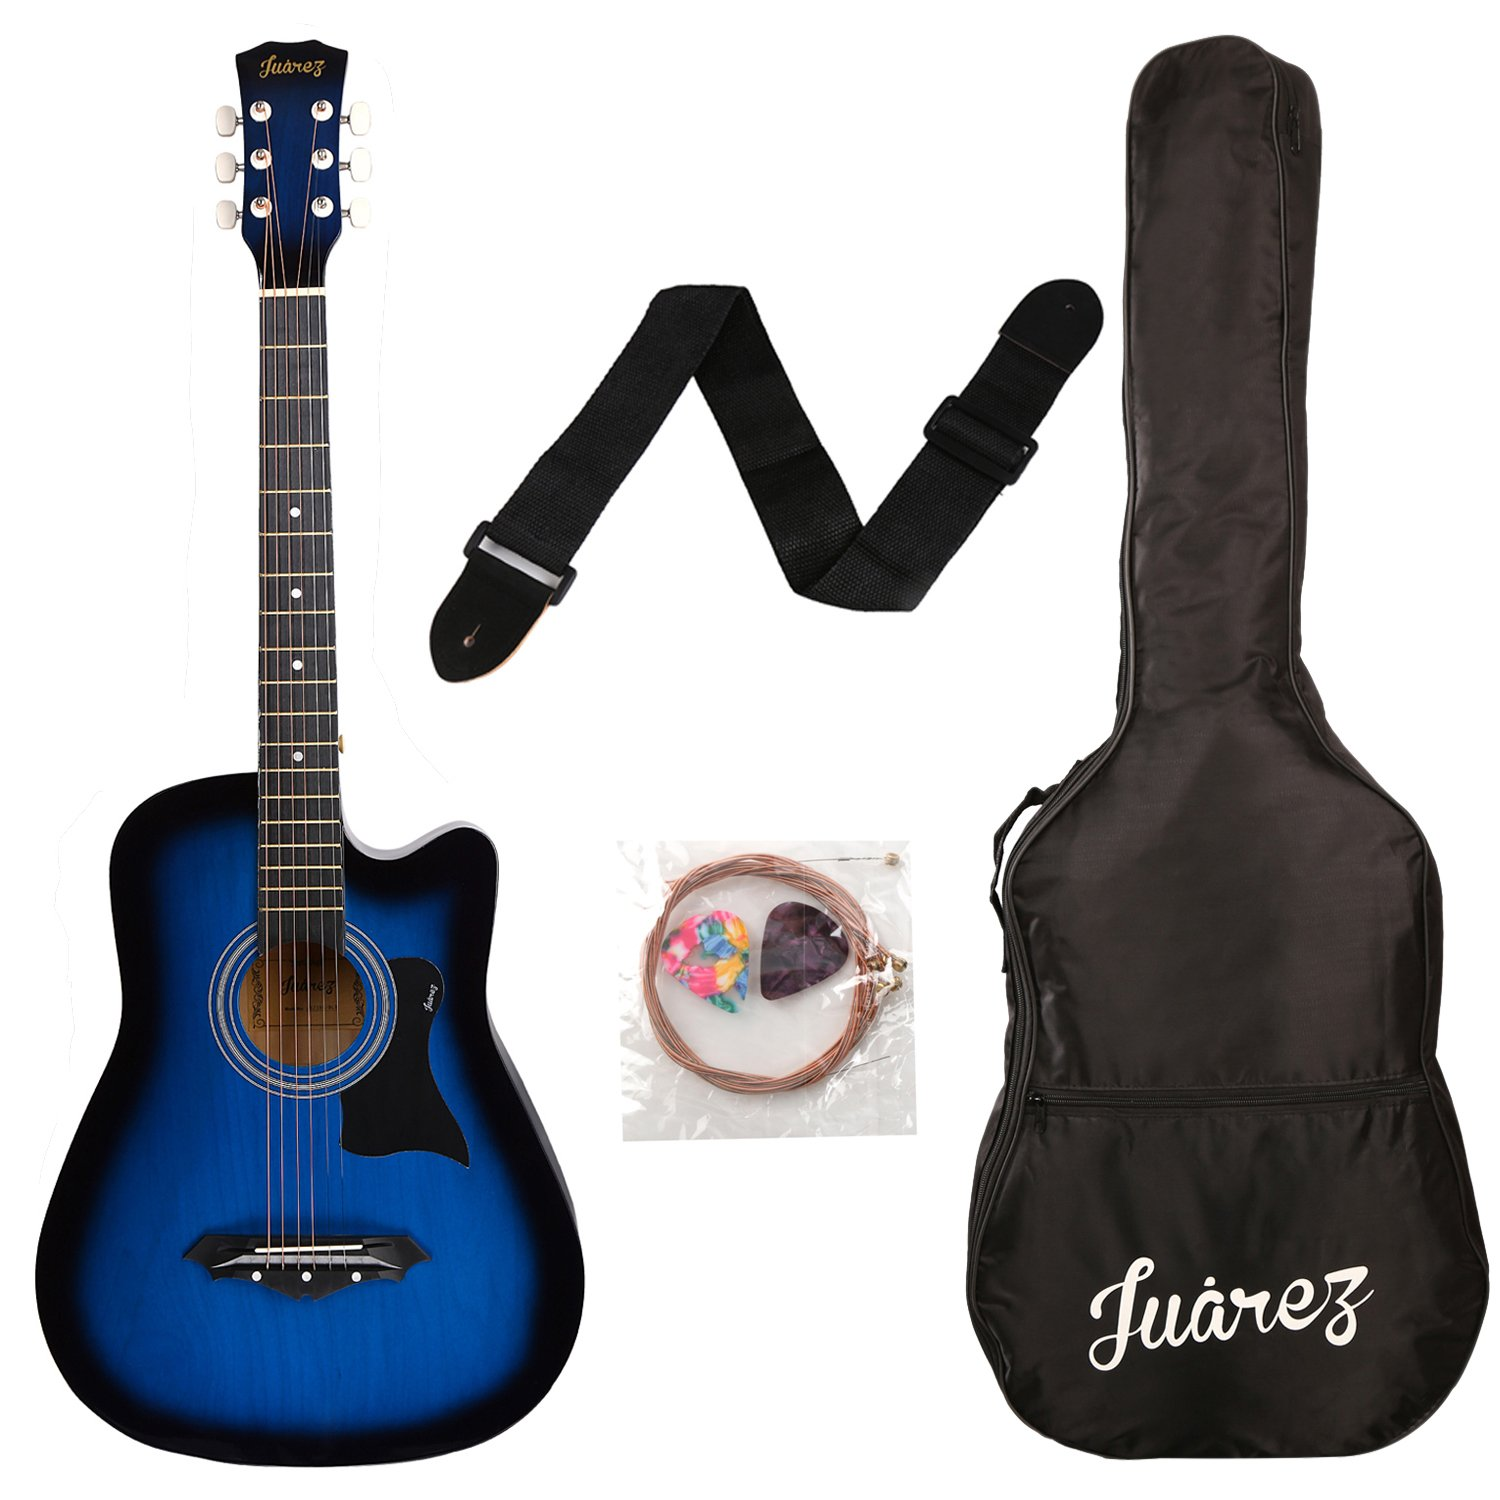 Juarez JRZ38C 6 Strings Acoustic Guitar 38 Inch Cutaway, Right Handed, TBS Transparent Blue Sunburst with Bag, Strings, Picks and Strap